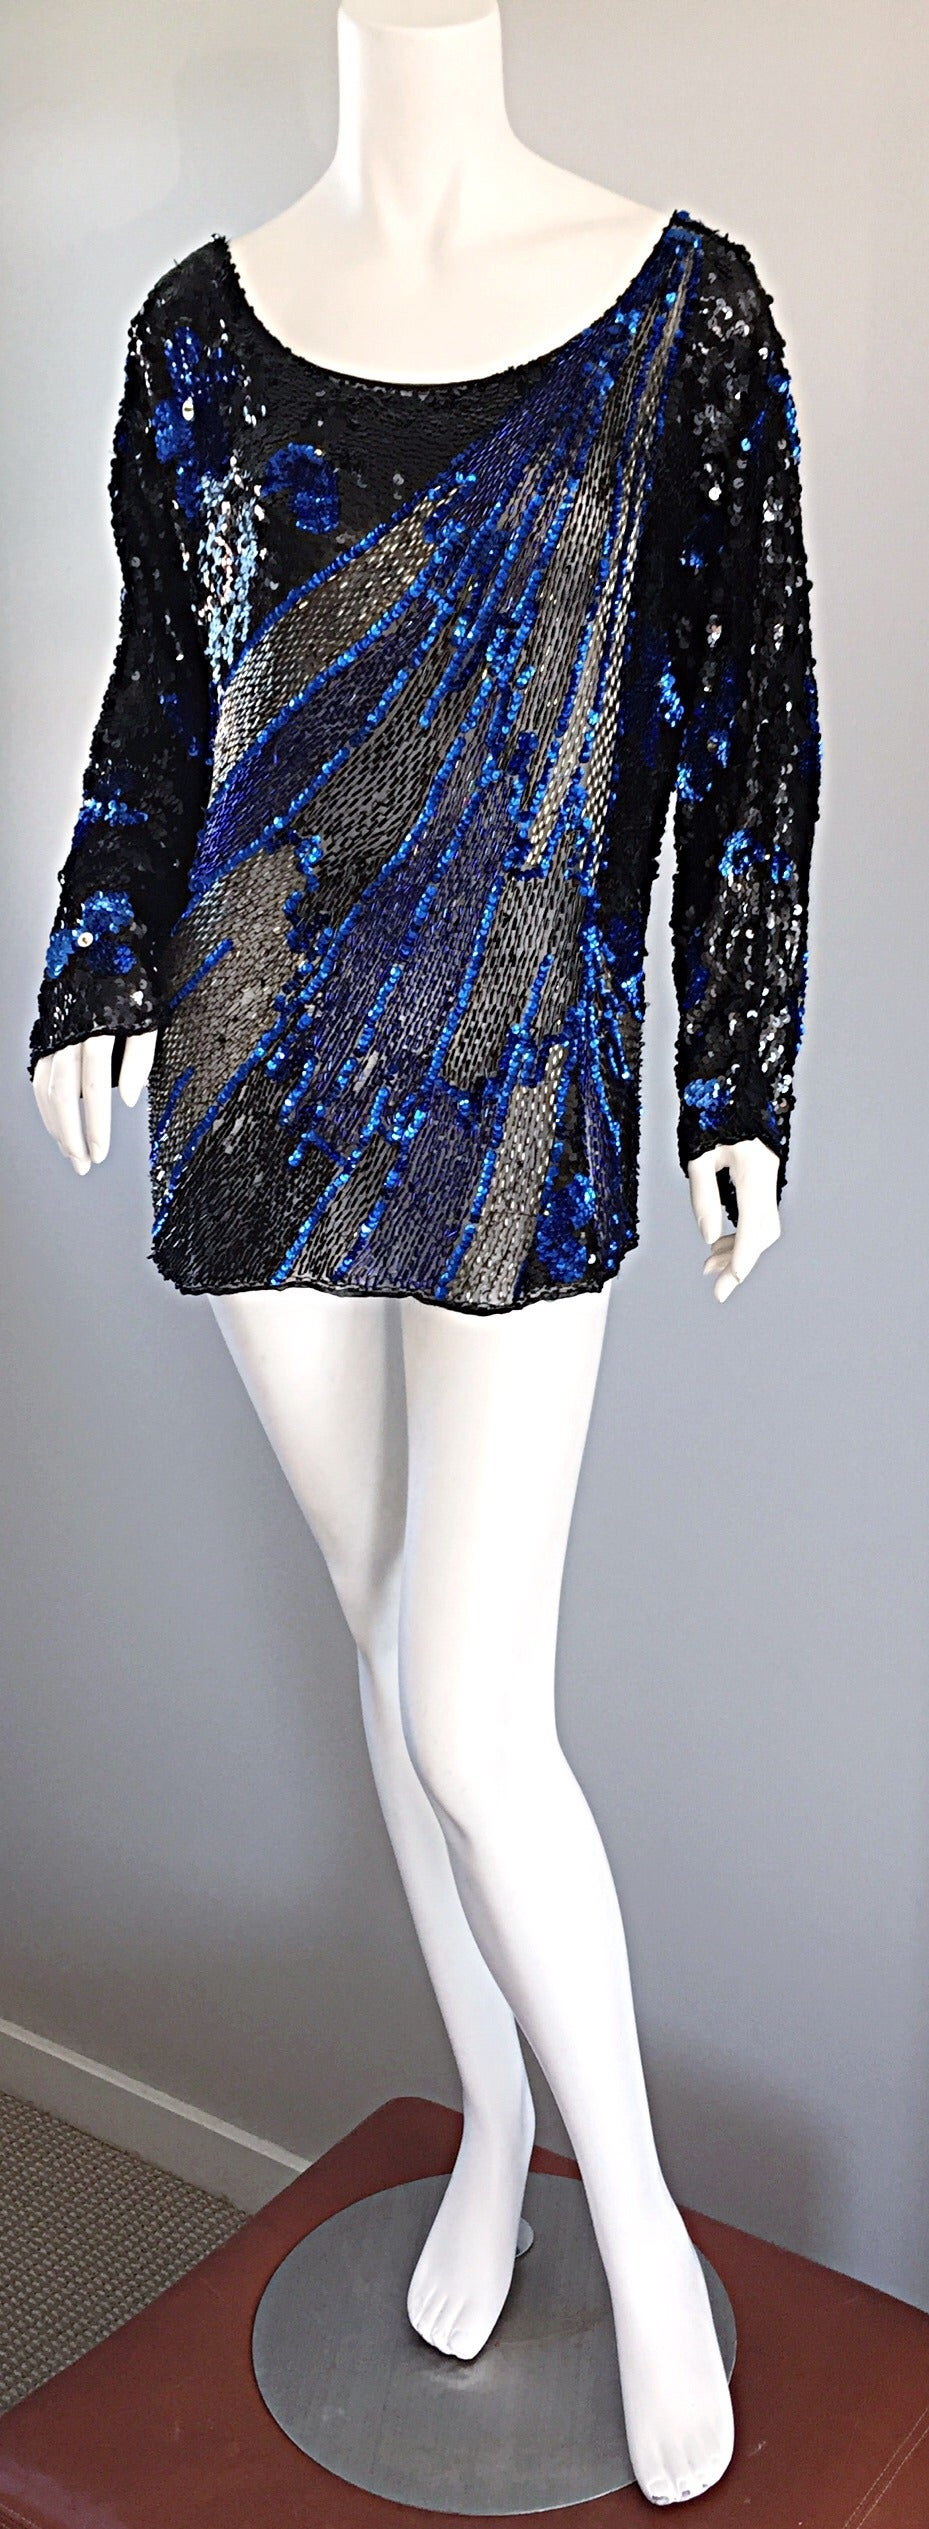 Black + Blue Sequined and Beaded Silk Fireworks & Flowers Top Attr. to Halston 6